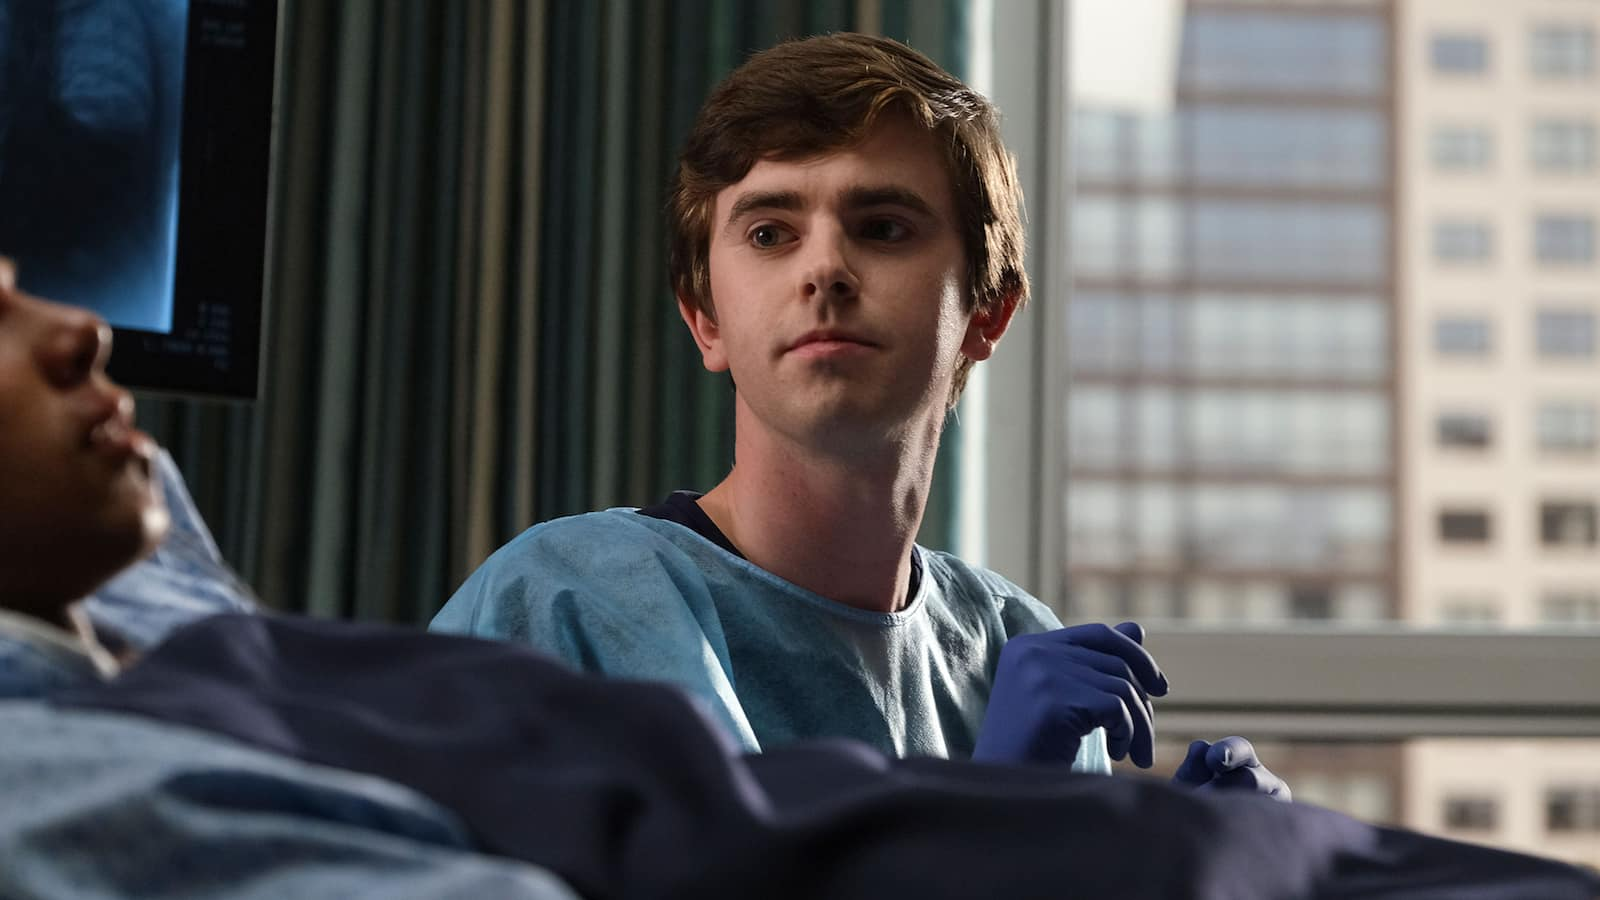 the-good-doctor/sesong-2/episode-9